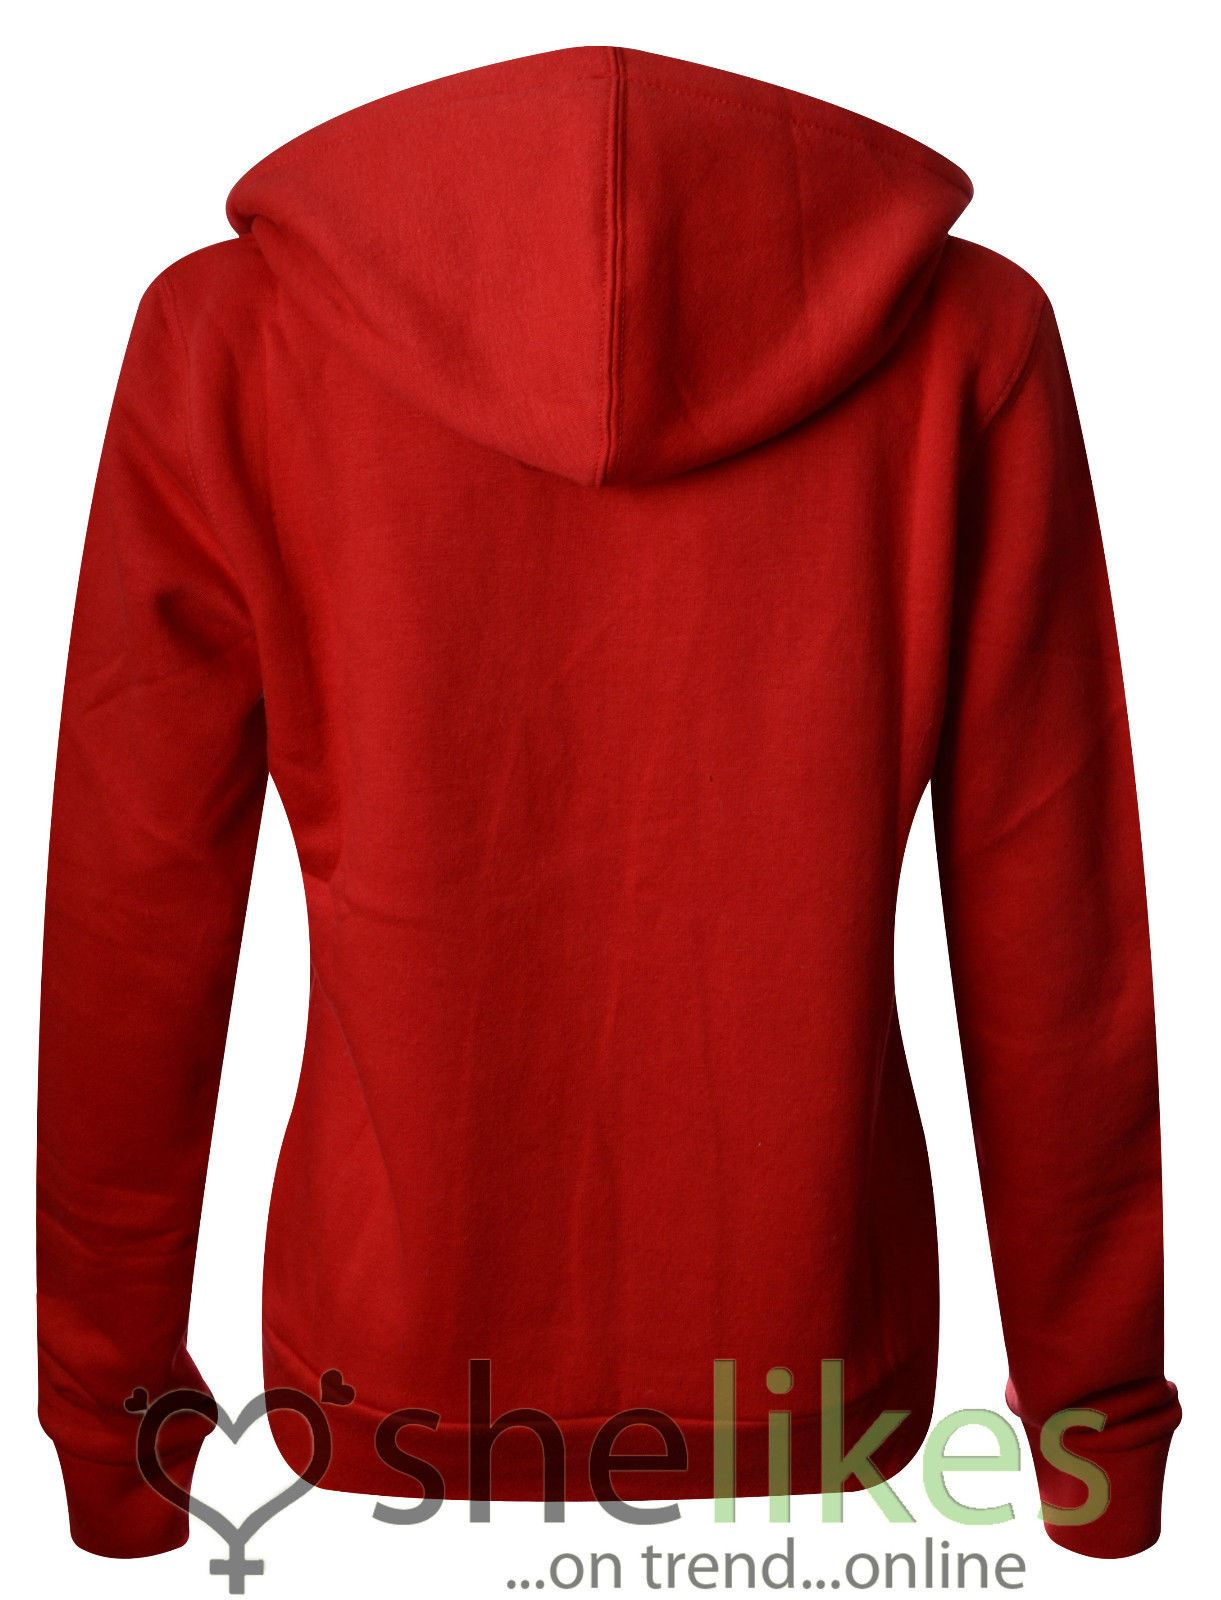 NEW-LADIES-WOMENS-PLUS-SIZE-FRONT-ZIP-HOODED-SWEATSHIRT-PLAIN-HOODIE-JACKET-TOP thumbnail 13